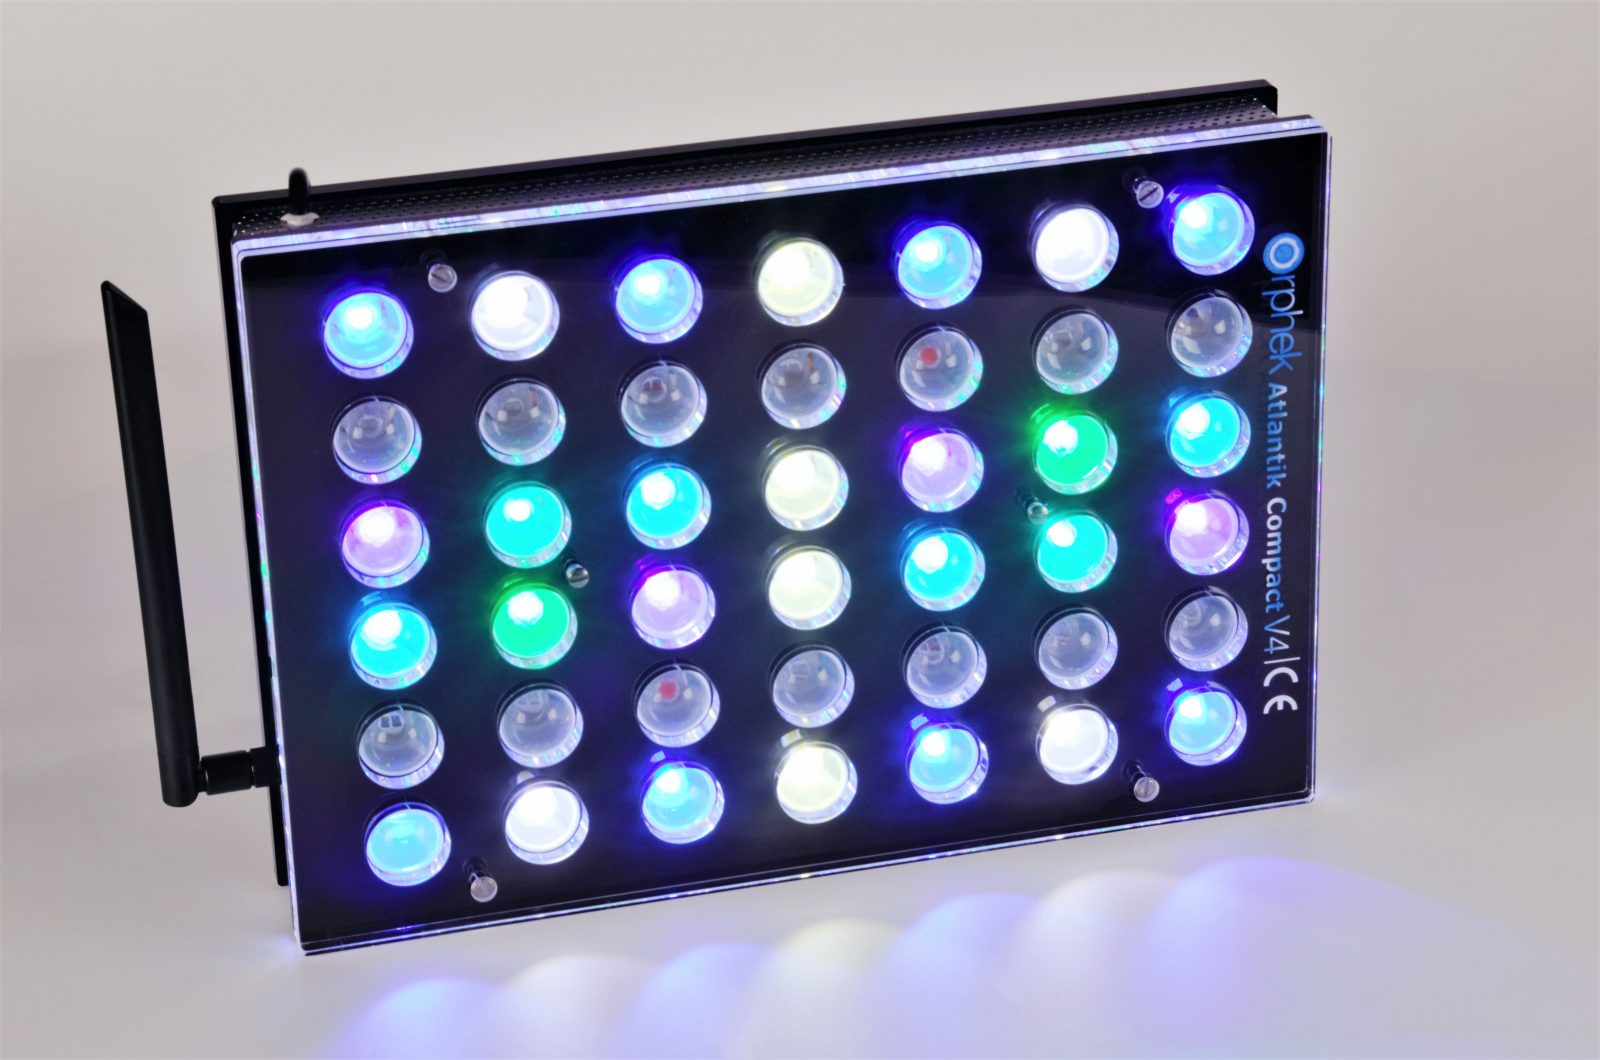 Orphek-Aquarium-LED-Lighting-Atlantik -Compact-V4-light -on -channel 1 + 2